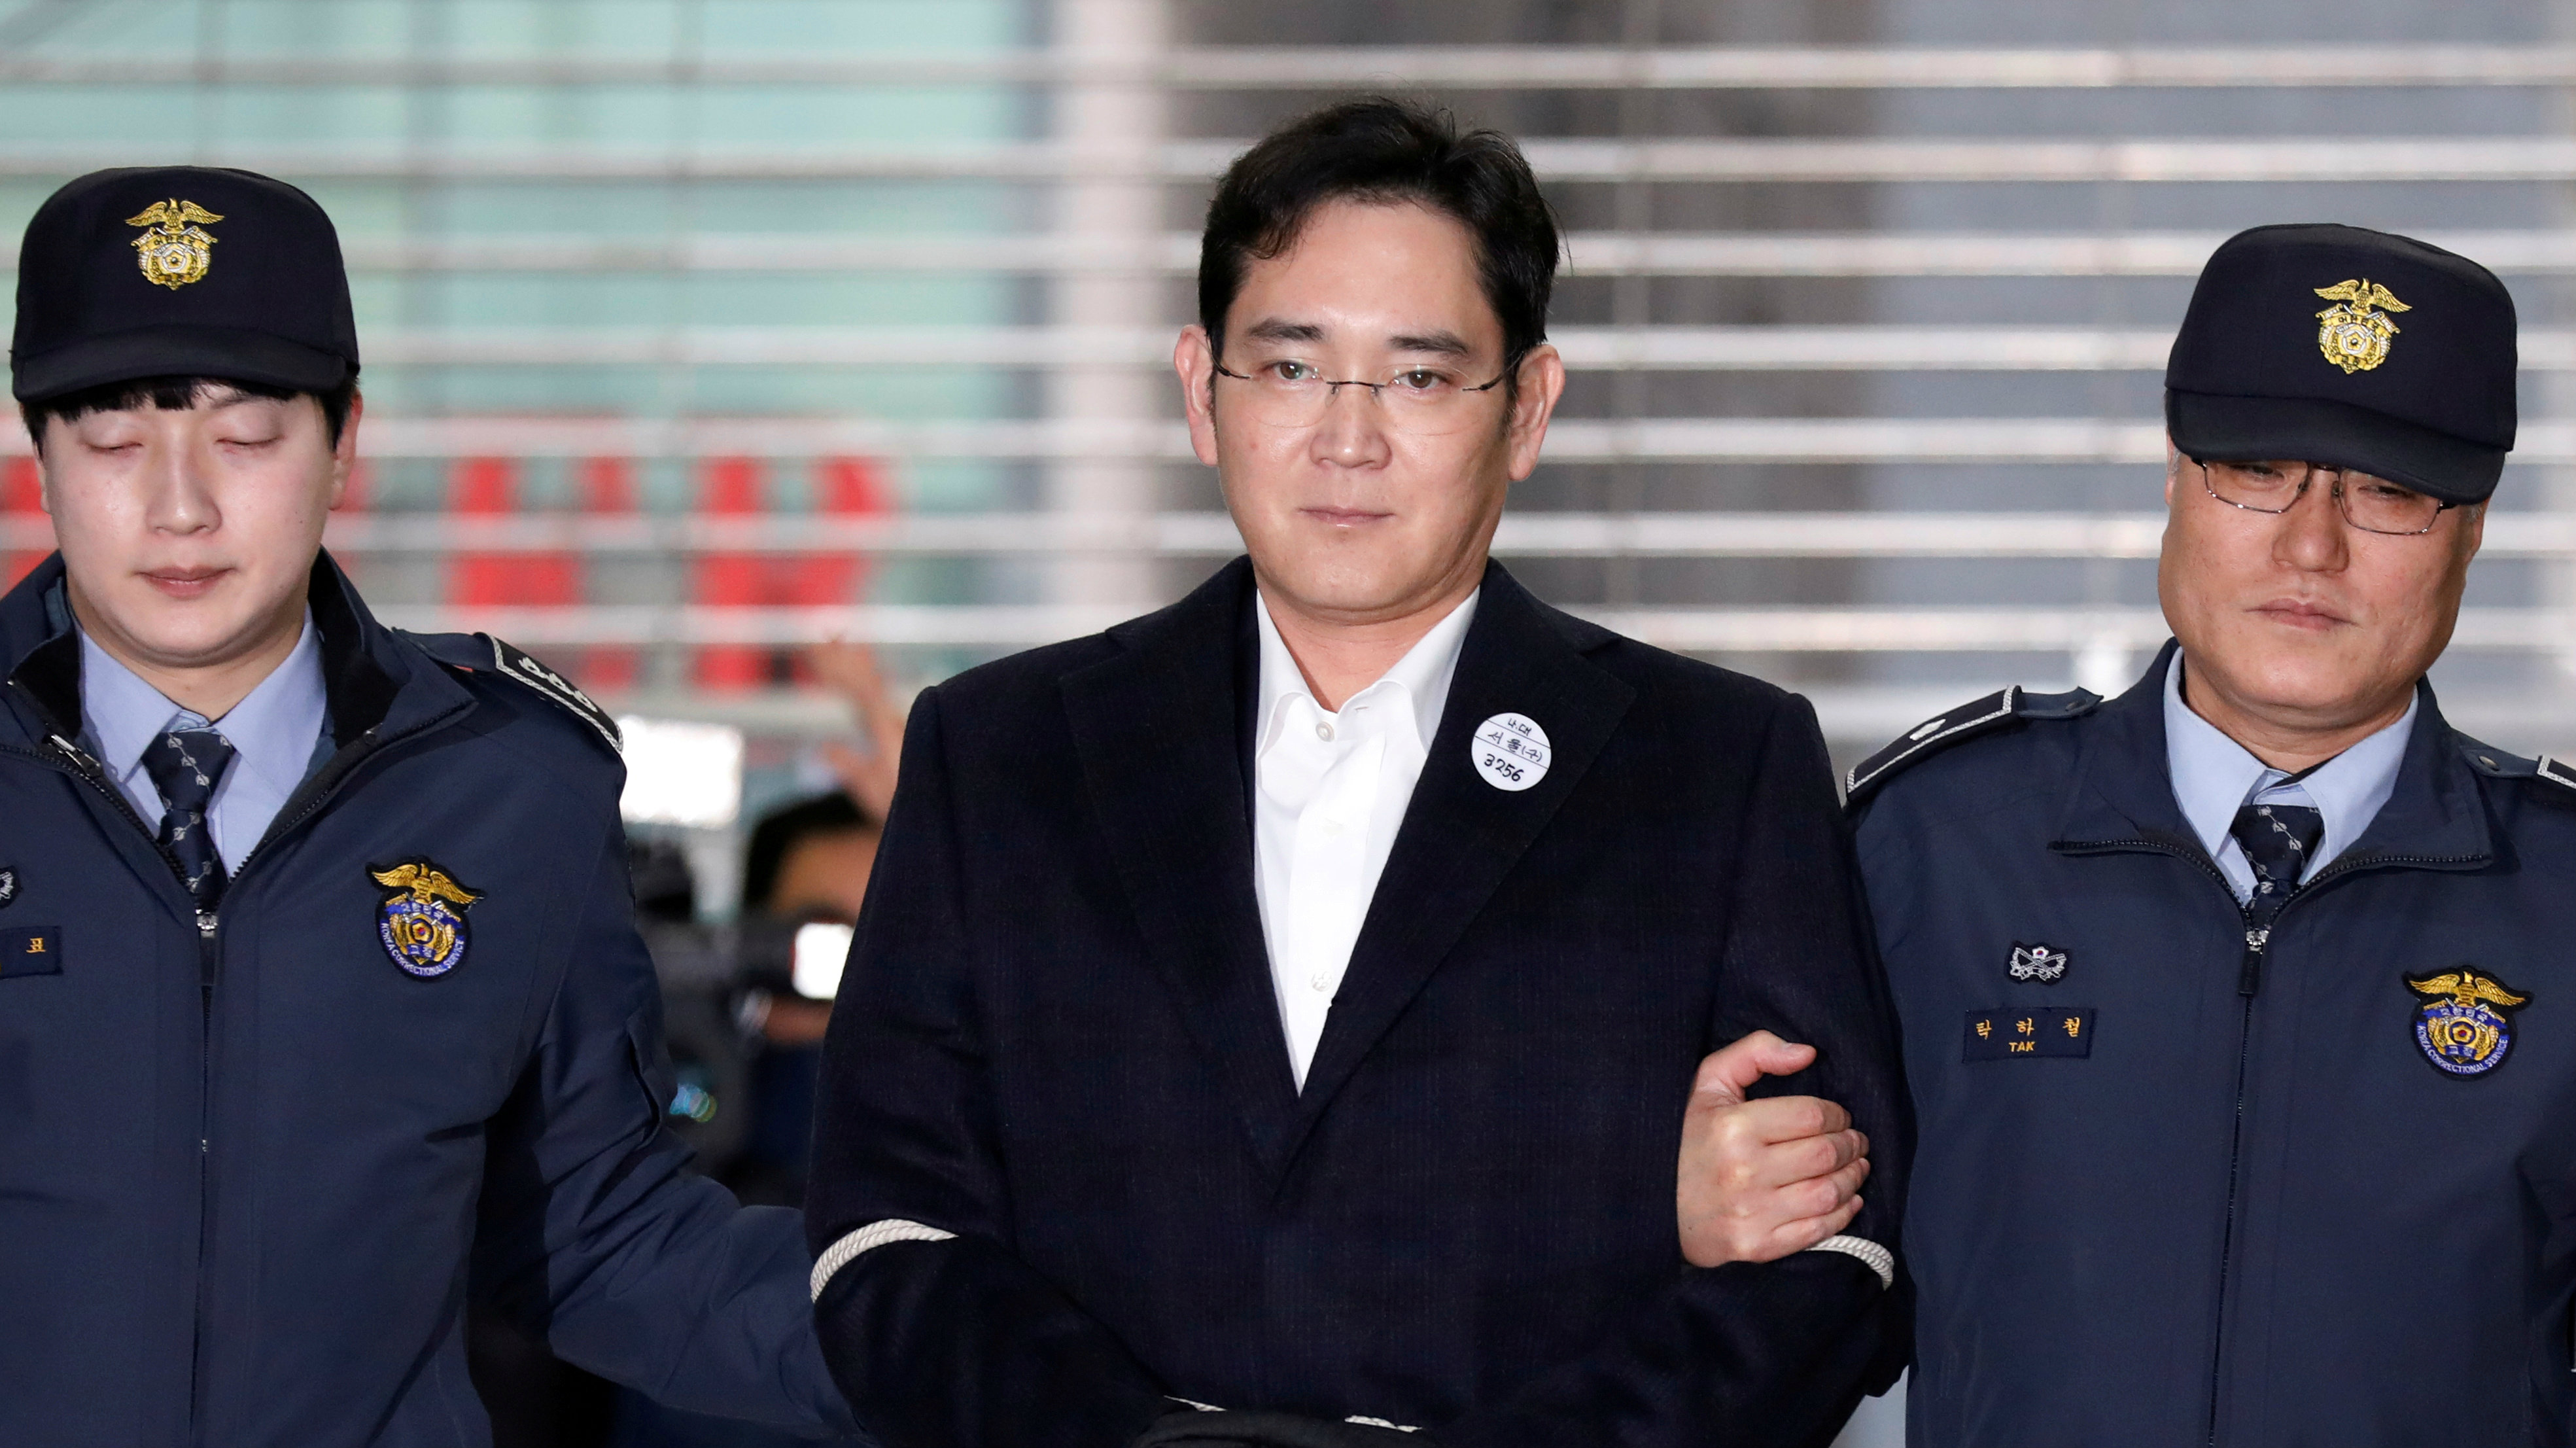 Samsung Group chief, Jay Y. Lee arrives at the office of the independent counsel team in Seoul, South Korea, February 19, 2017.